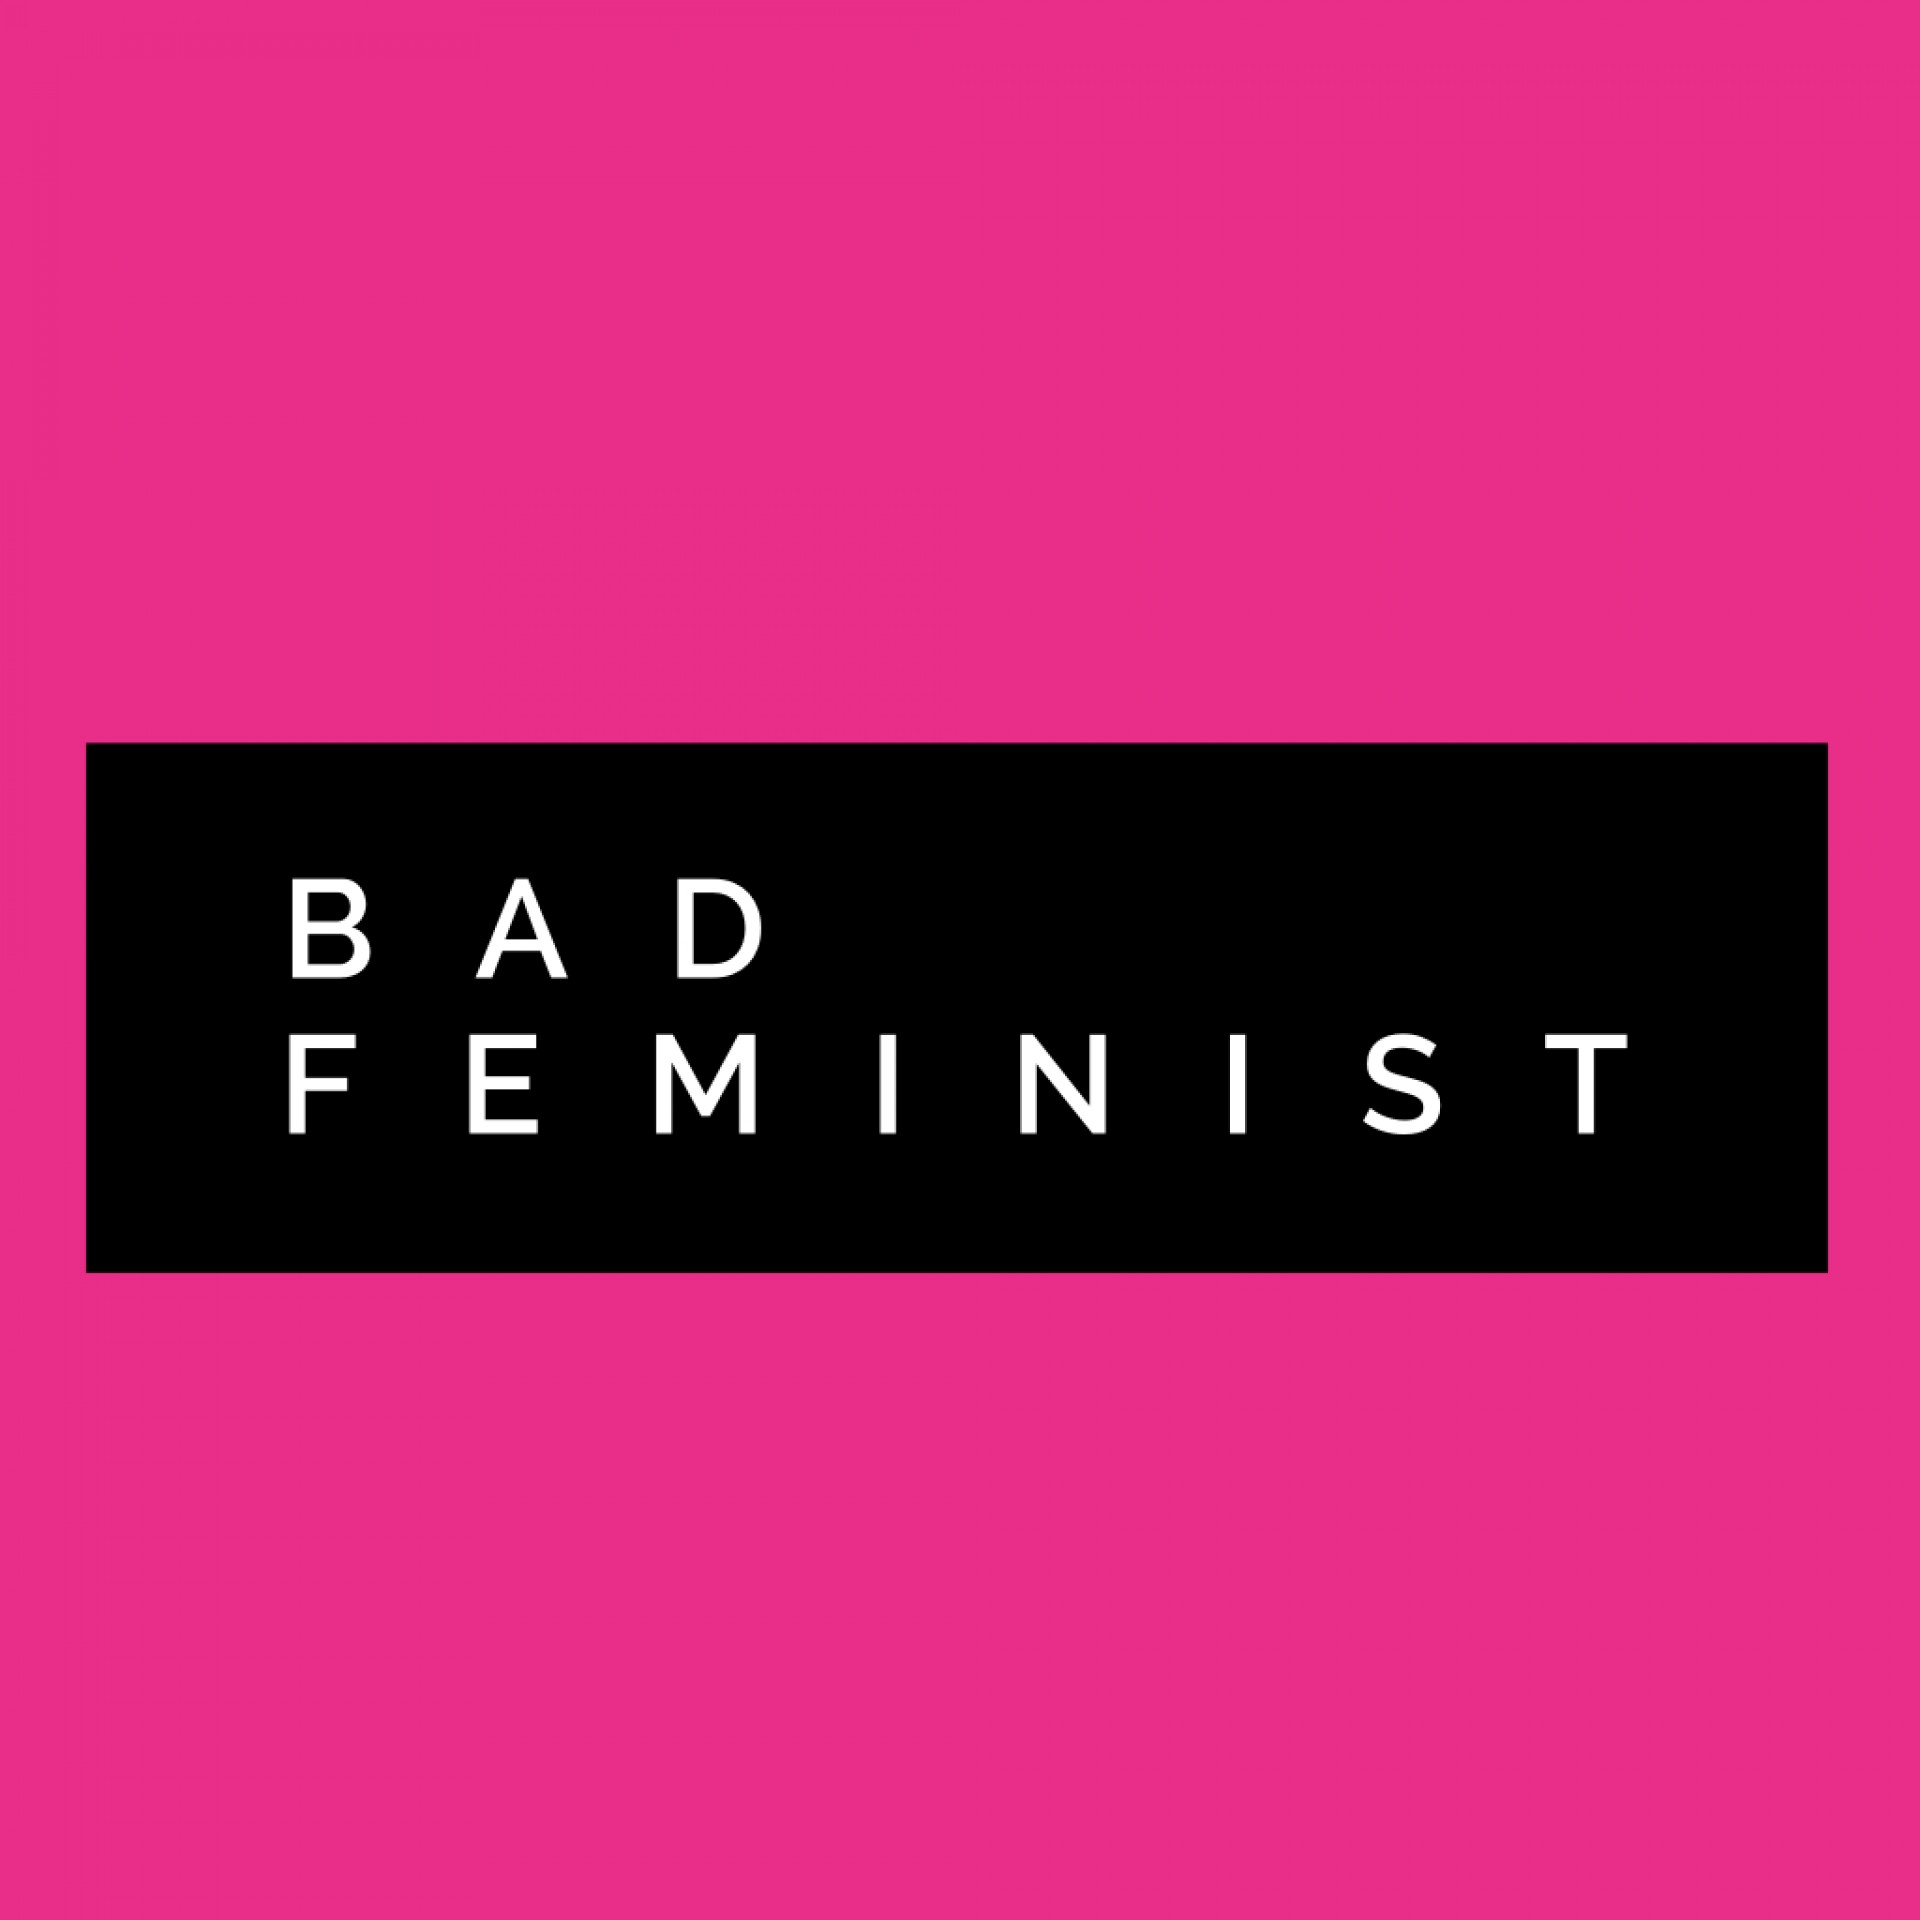 012 Feminist Essays Essay Example Incredible Bad Review Pdf Epub 1920